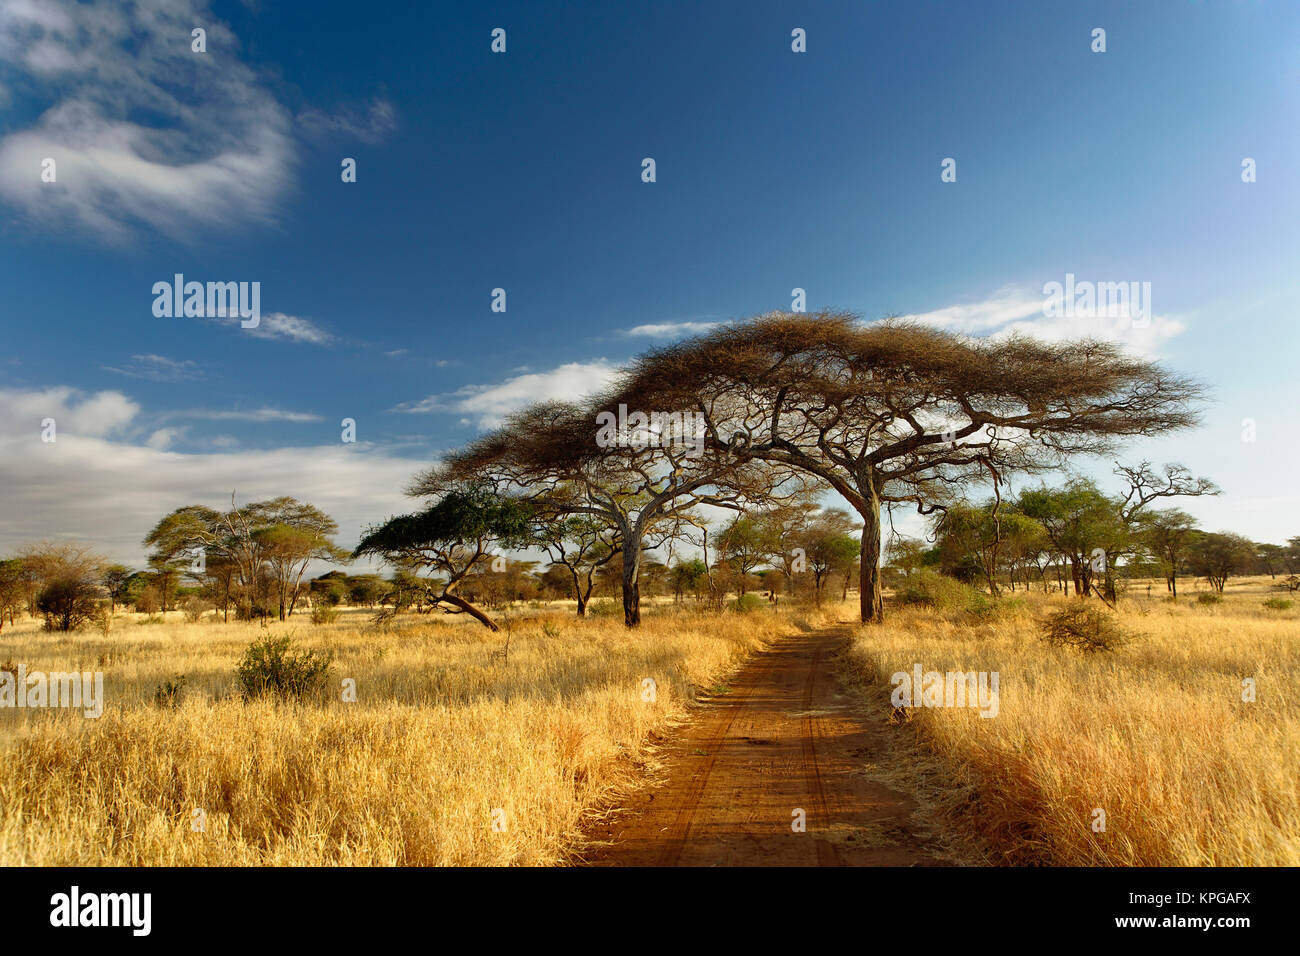 Primitive dirt roadway and acacia trees in late afternoon light, Tarangire National Park, Tanzania - Stock Image